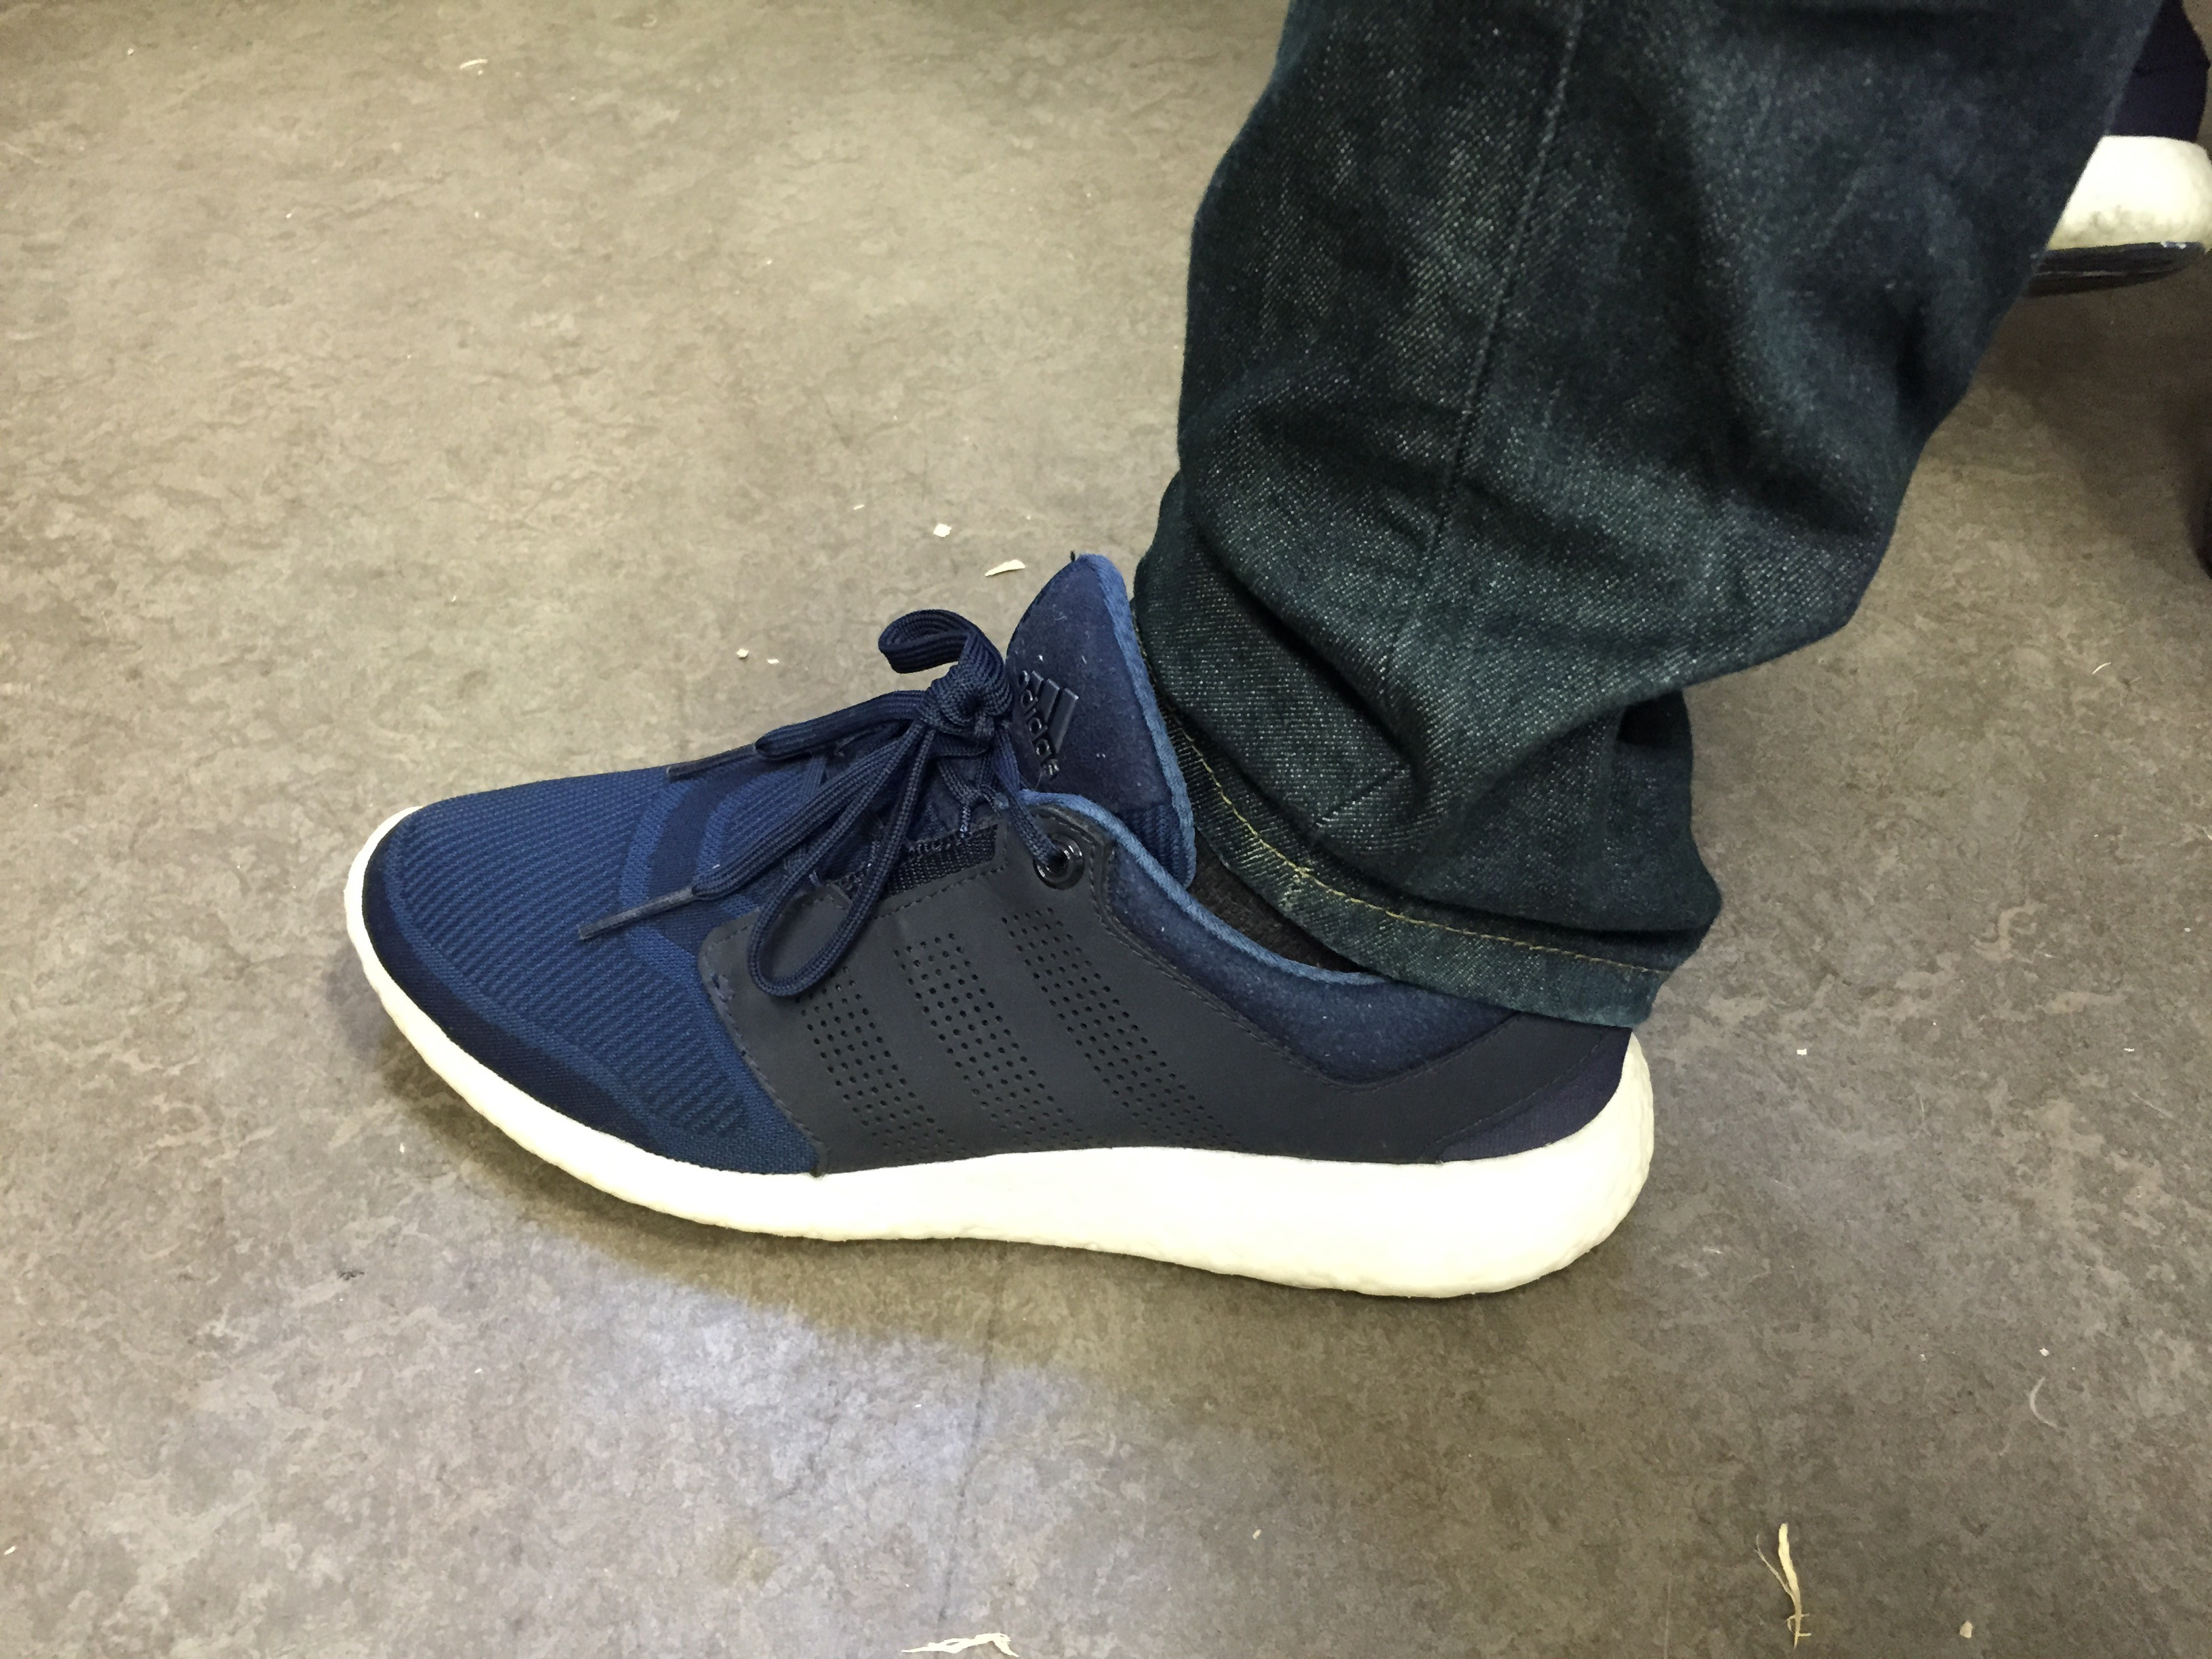 adidas Pure Boost 2 review. I have been